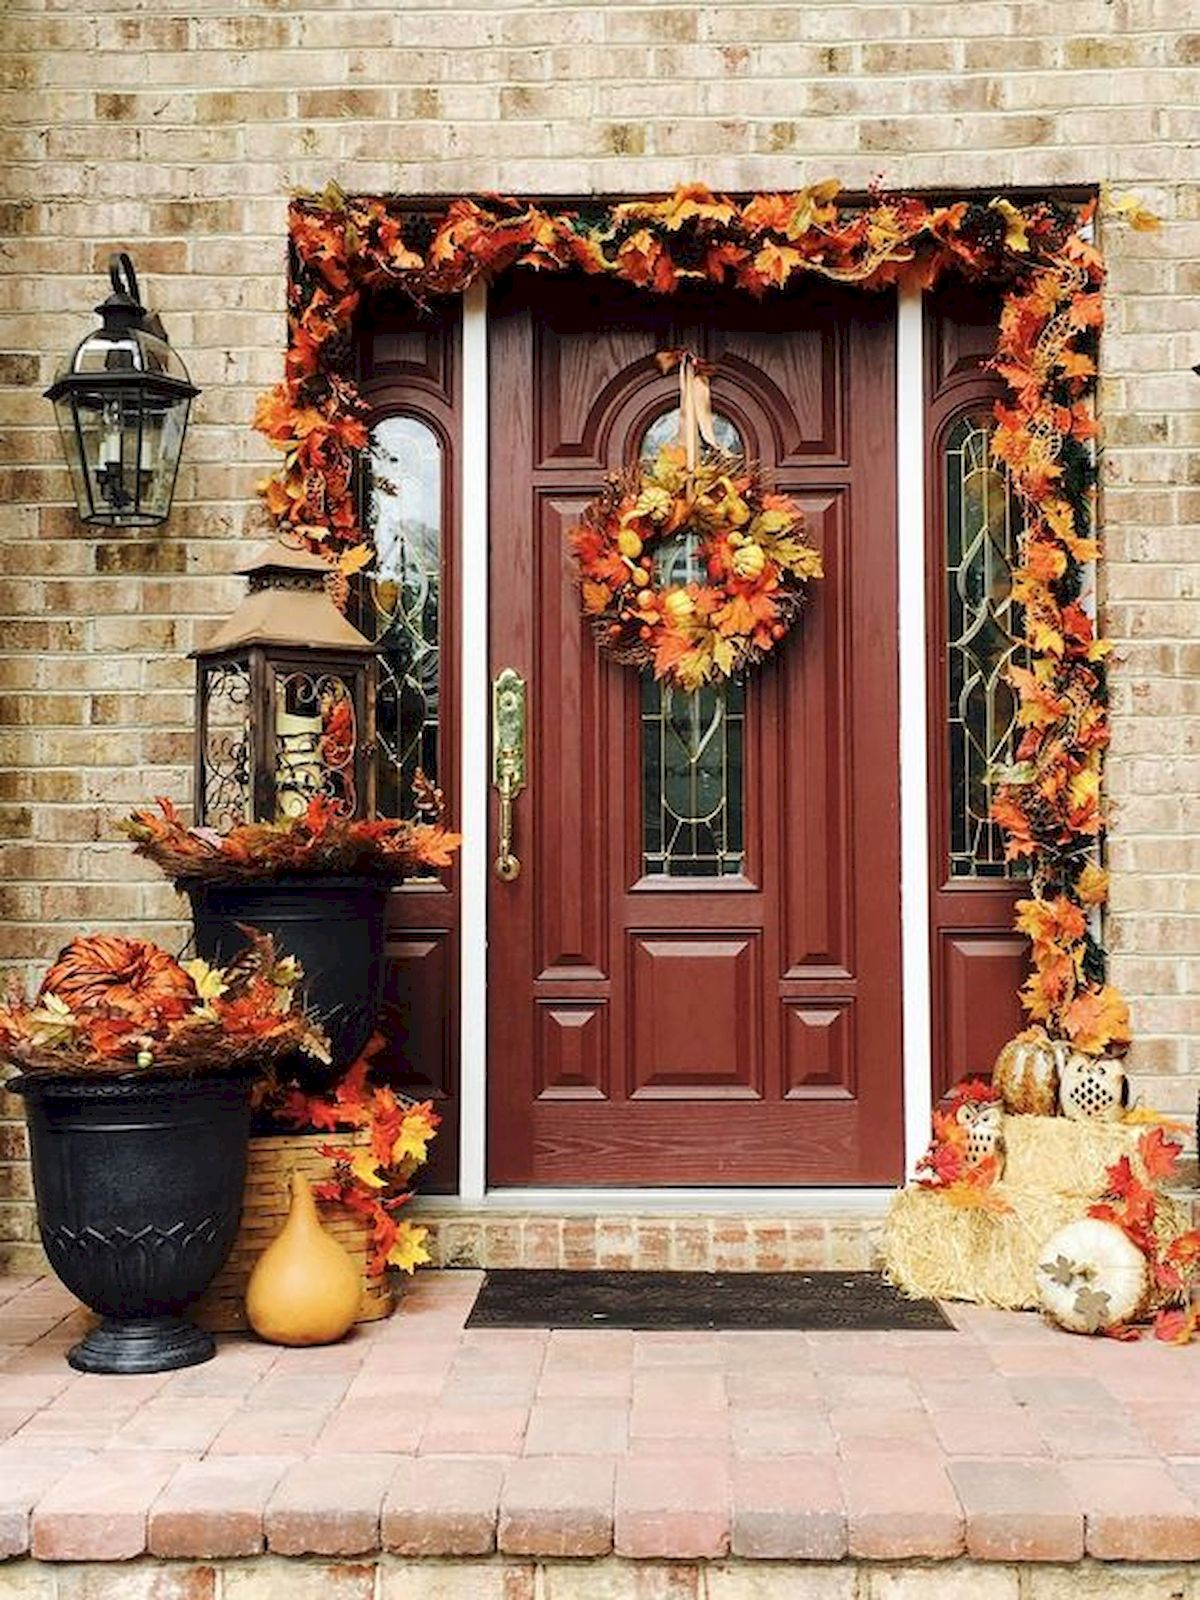 40 Beautiful Fall Front Porch Decorating Ideas That Will Make Your Home Look Amazing (24)